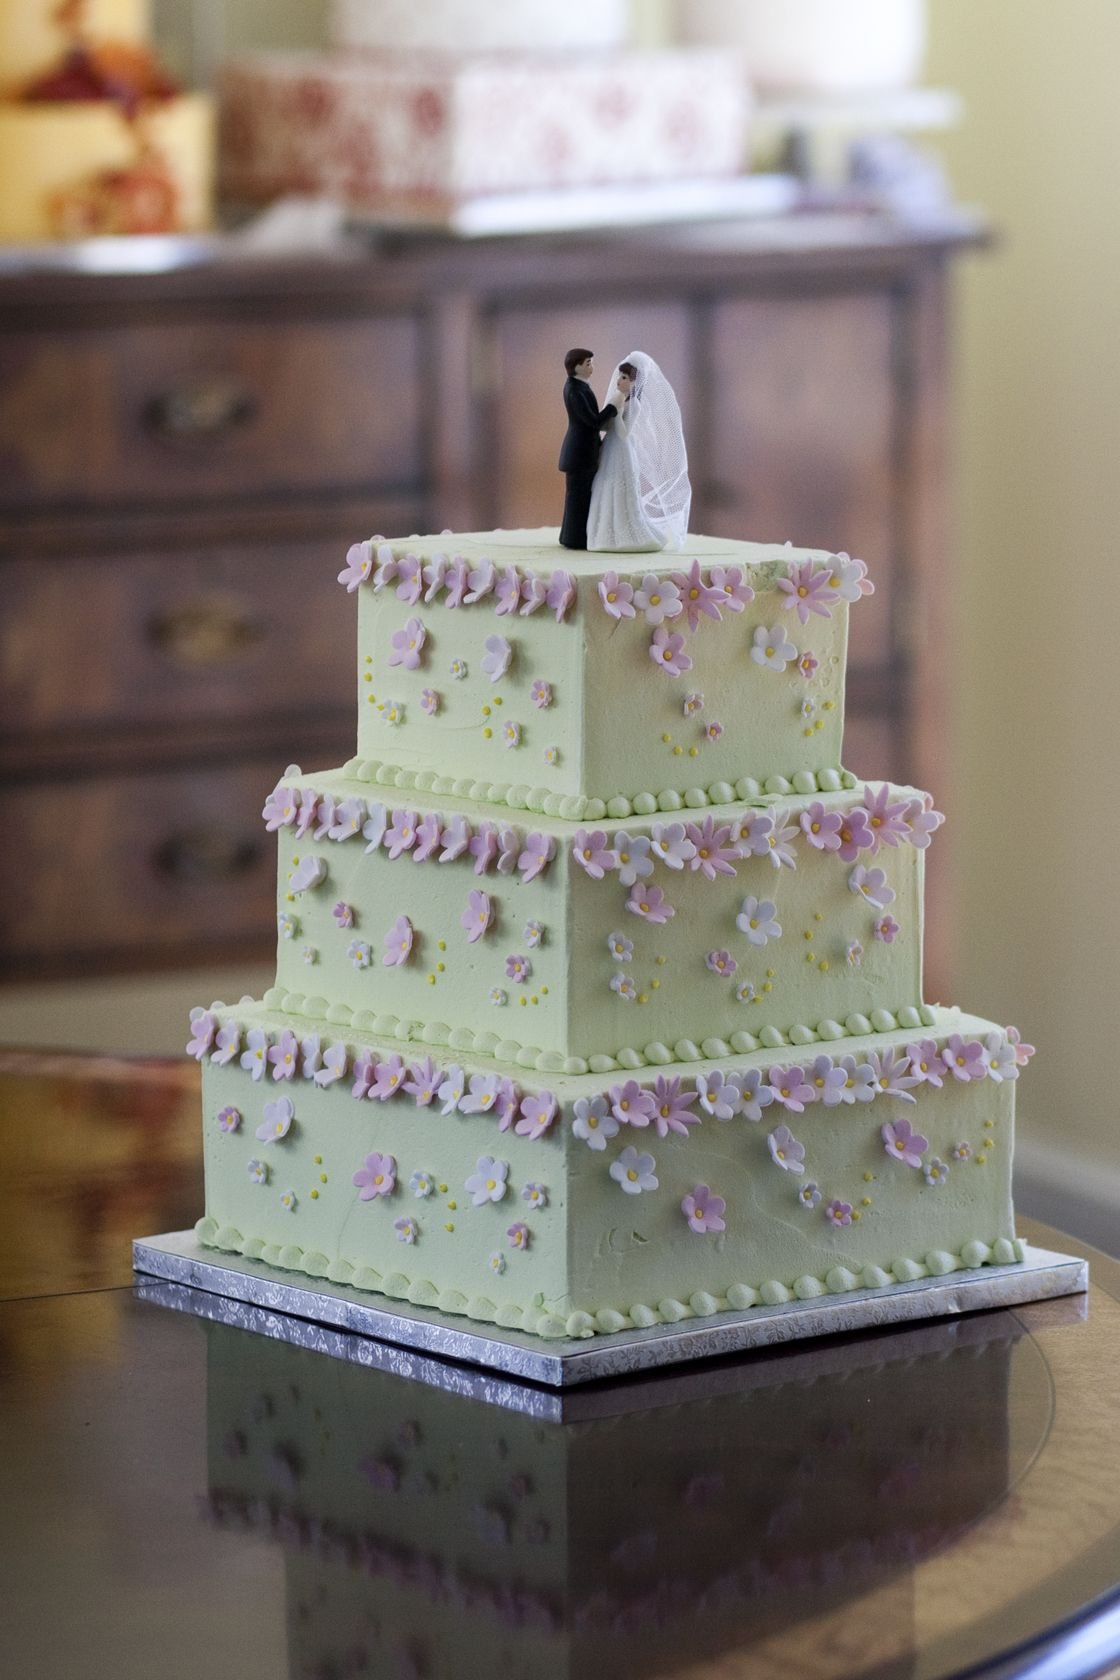 A pink and green floral cake would be great for a spring wedding